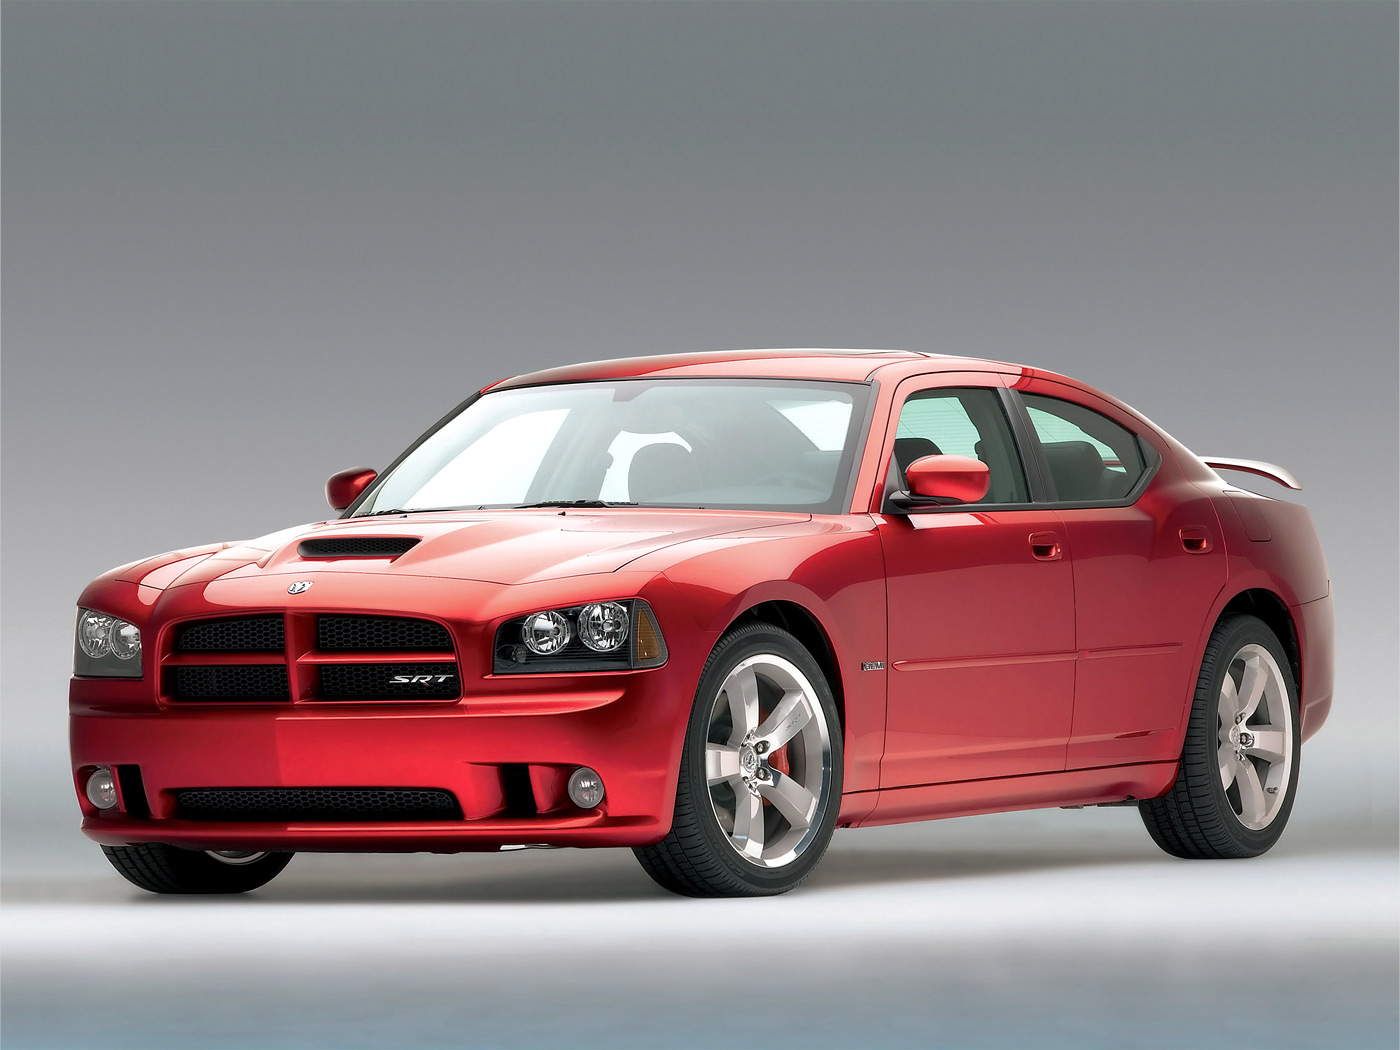 Dodge Charger Srt8 Wallpaper 4668 Hd Wallpapers in Cars   Imagescicom 1400x1050